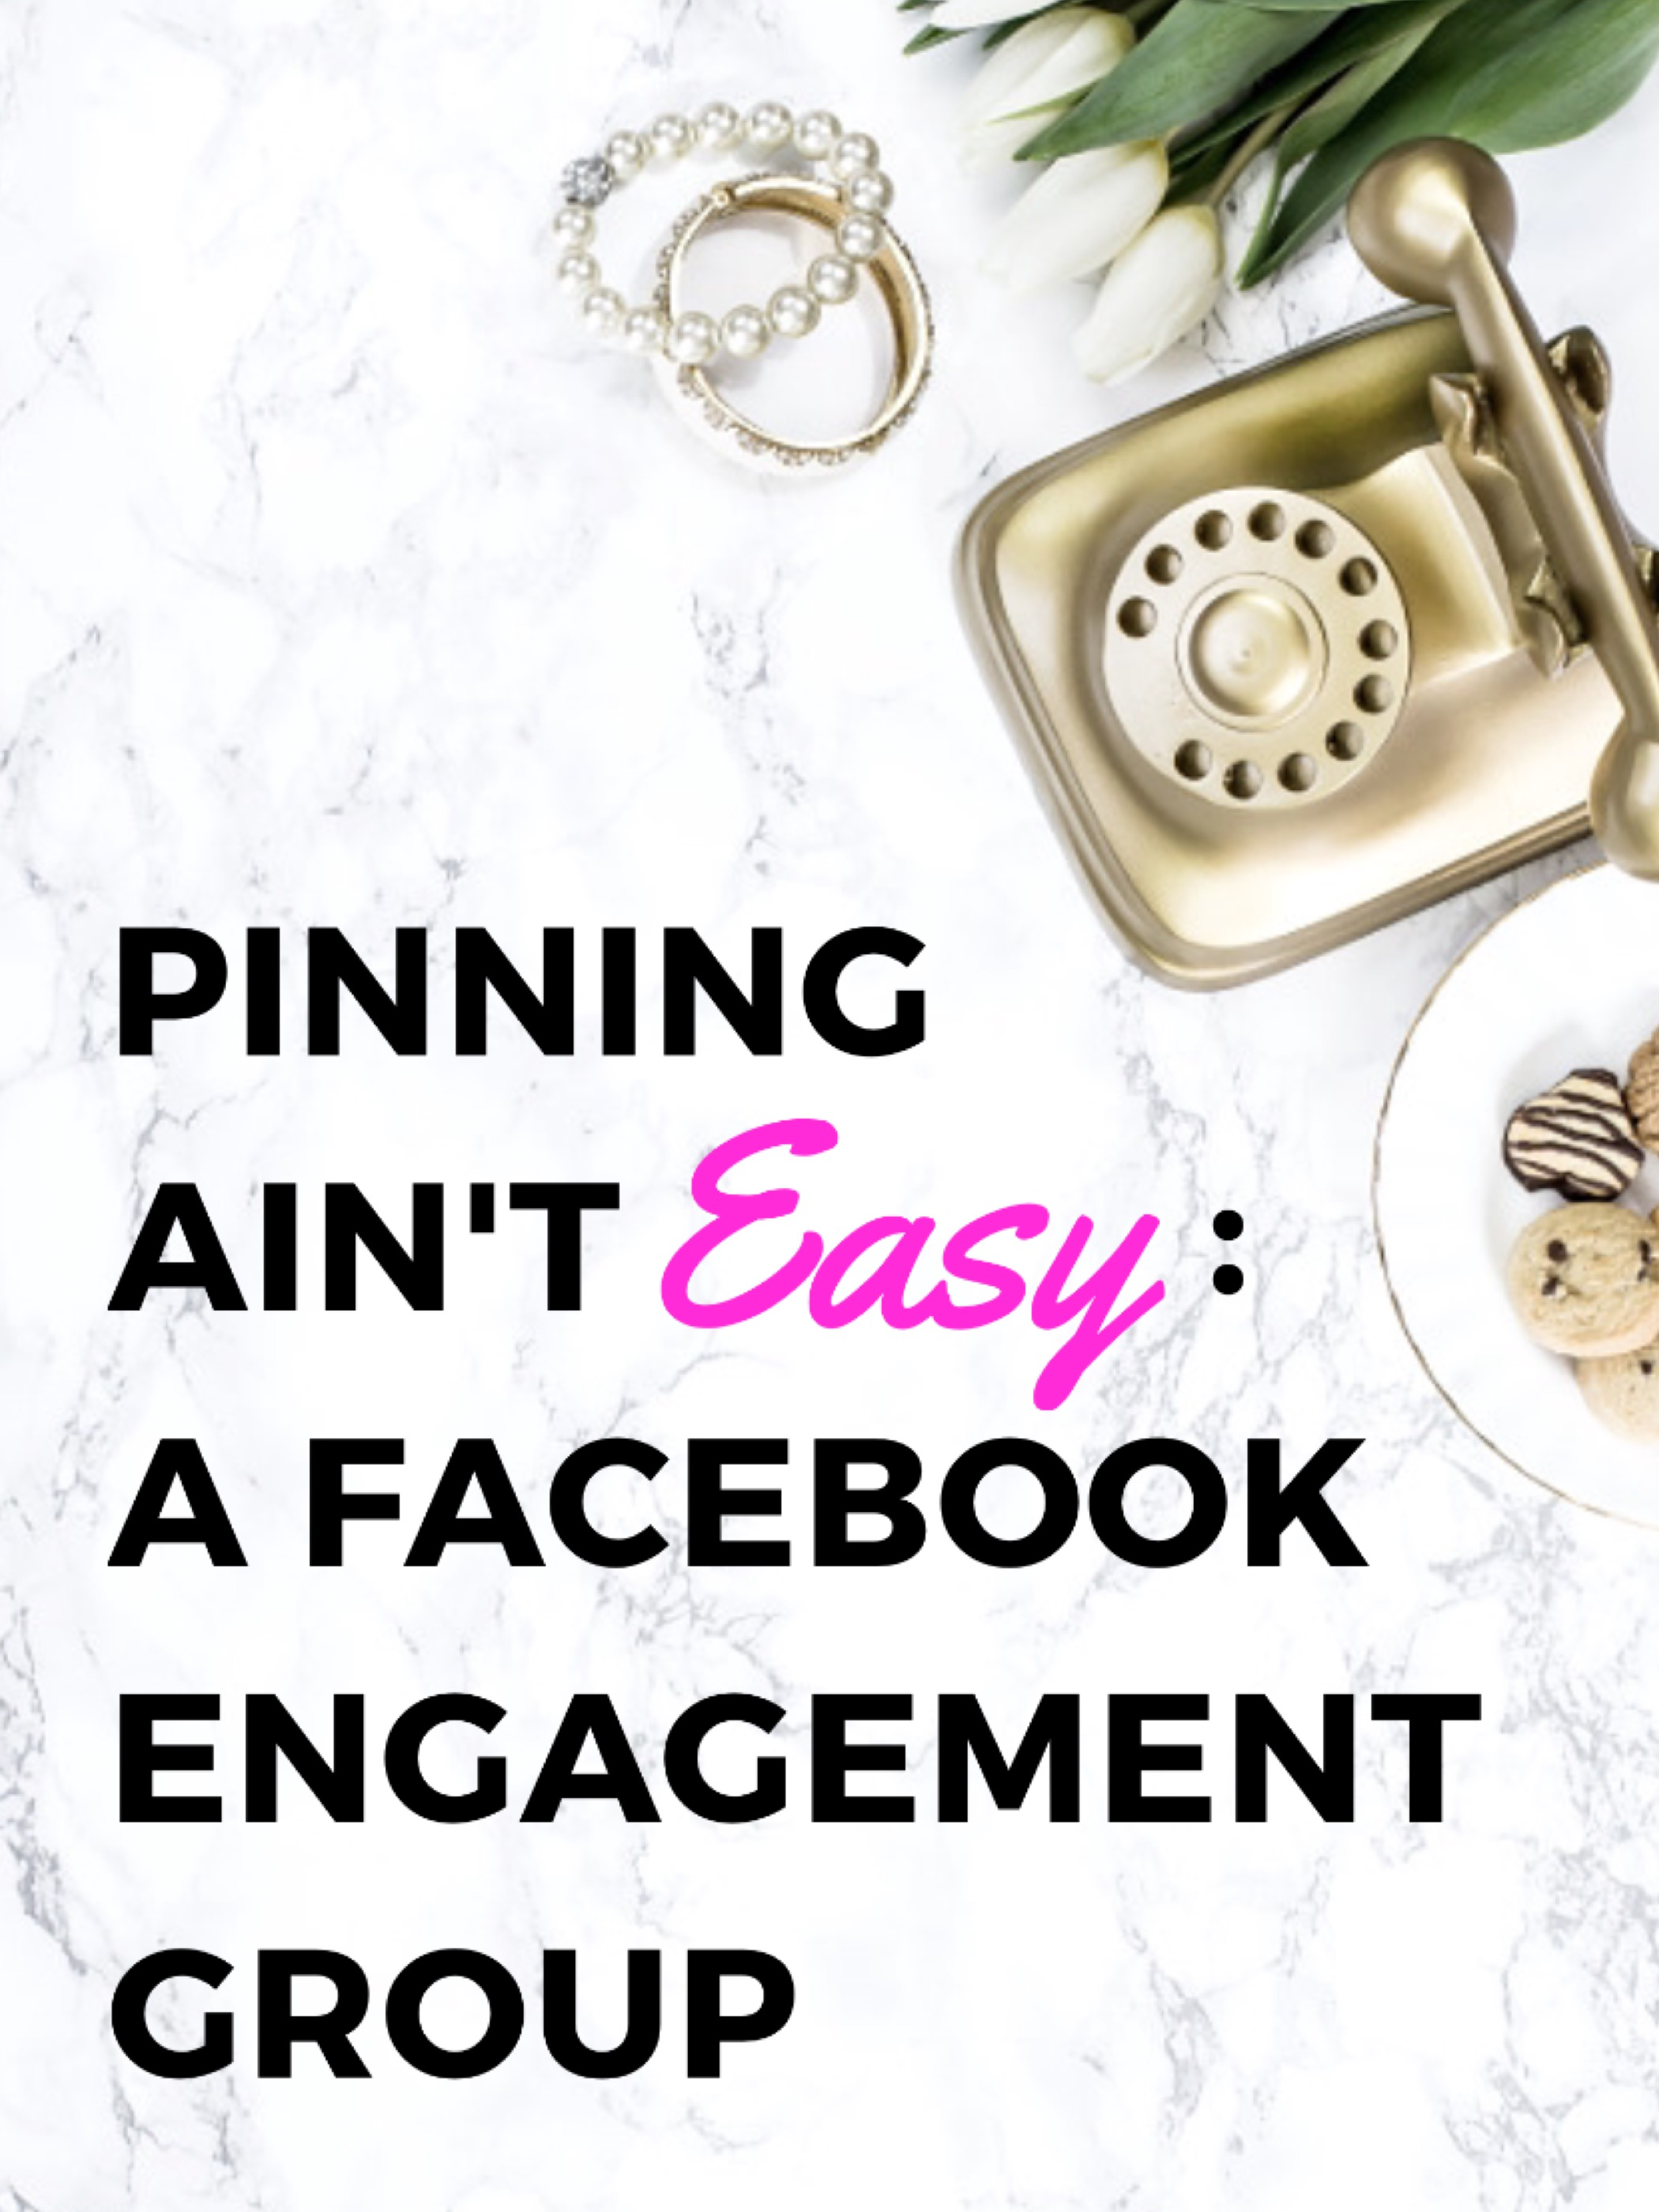 PINNING AIN'T EASY: A FACEBOOK ENGAGEMENT GROUP